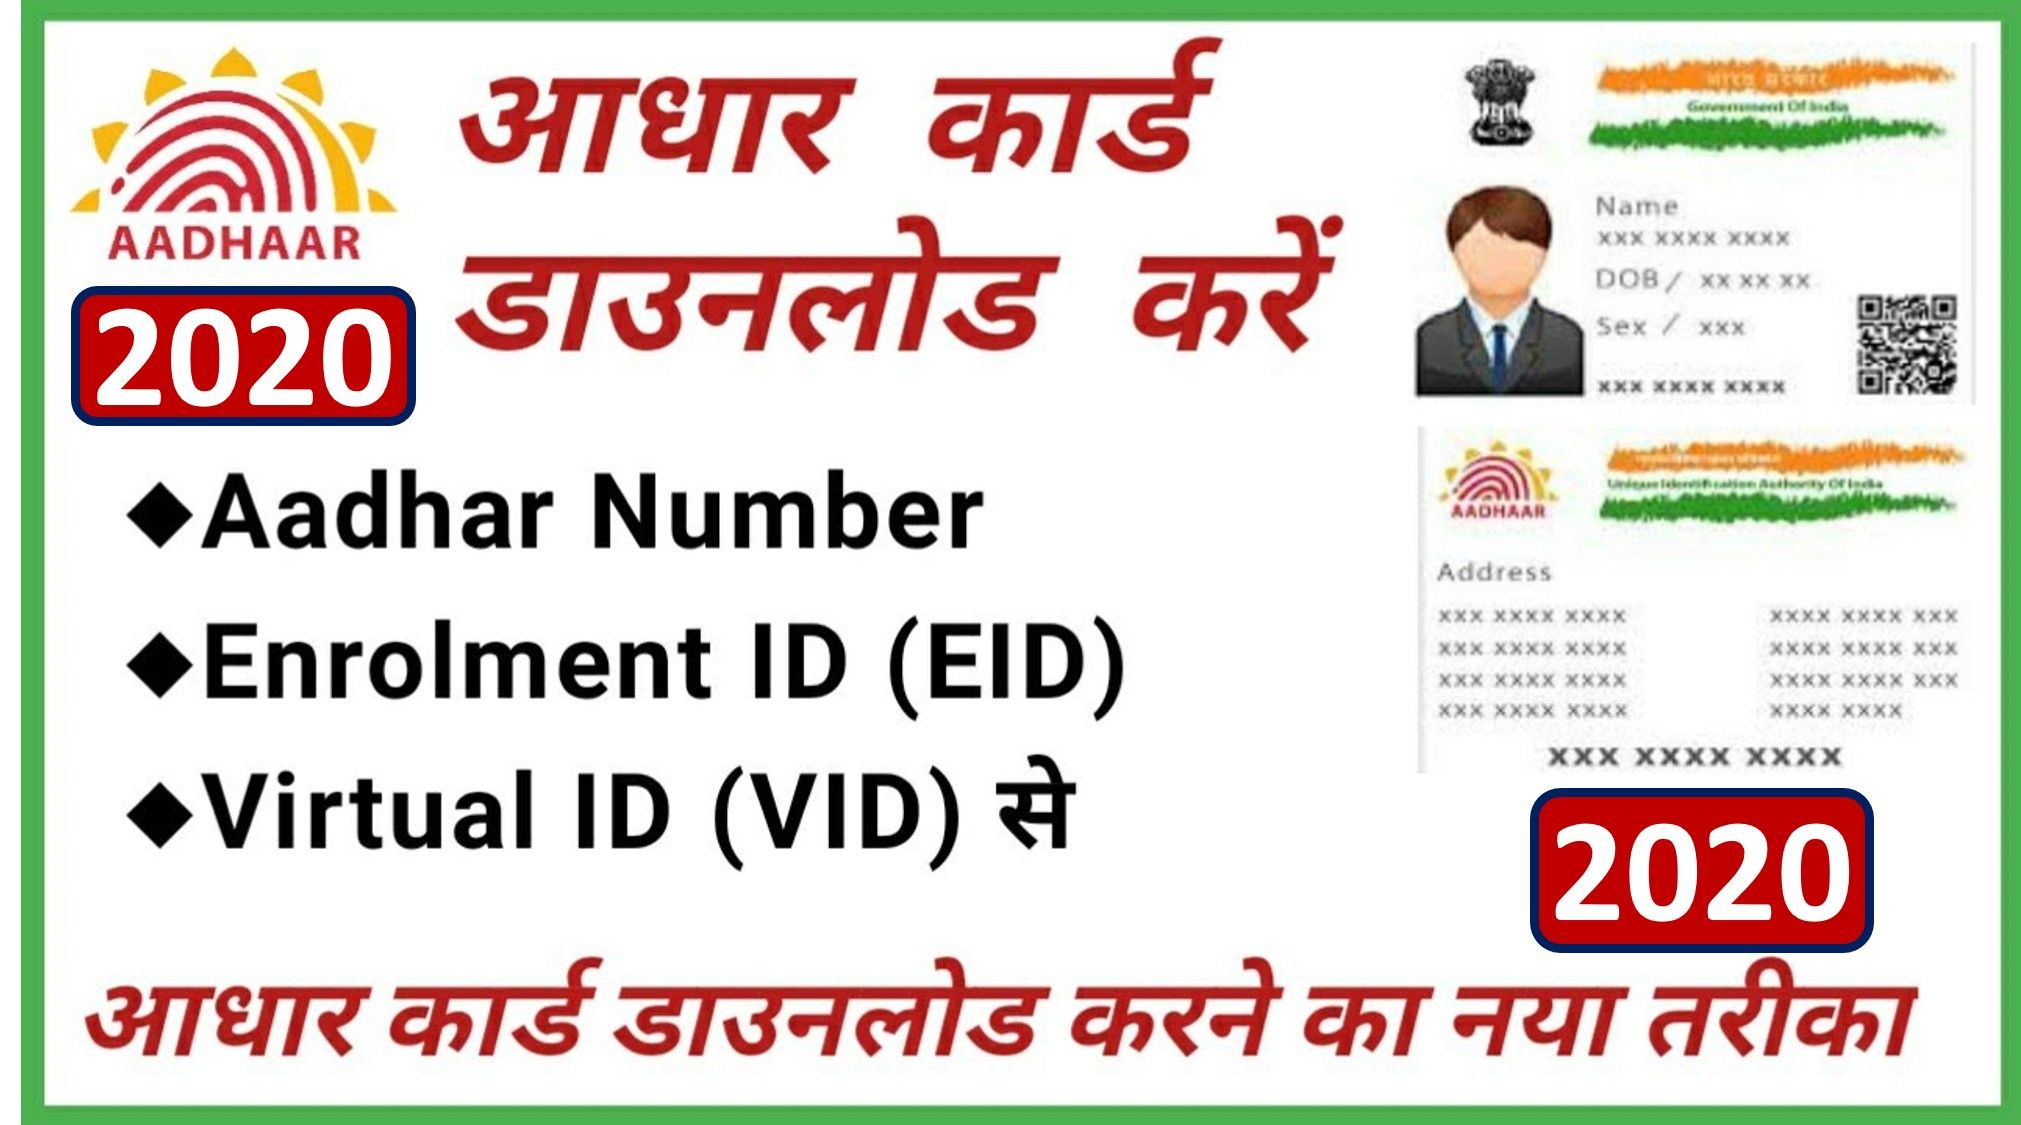 How To Aadhaar Card Download 2020 In 2020 Cards Names Technology